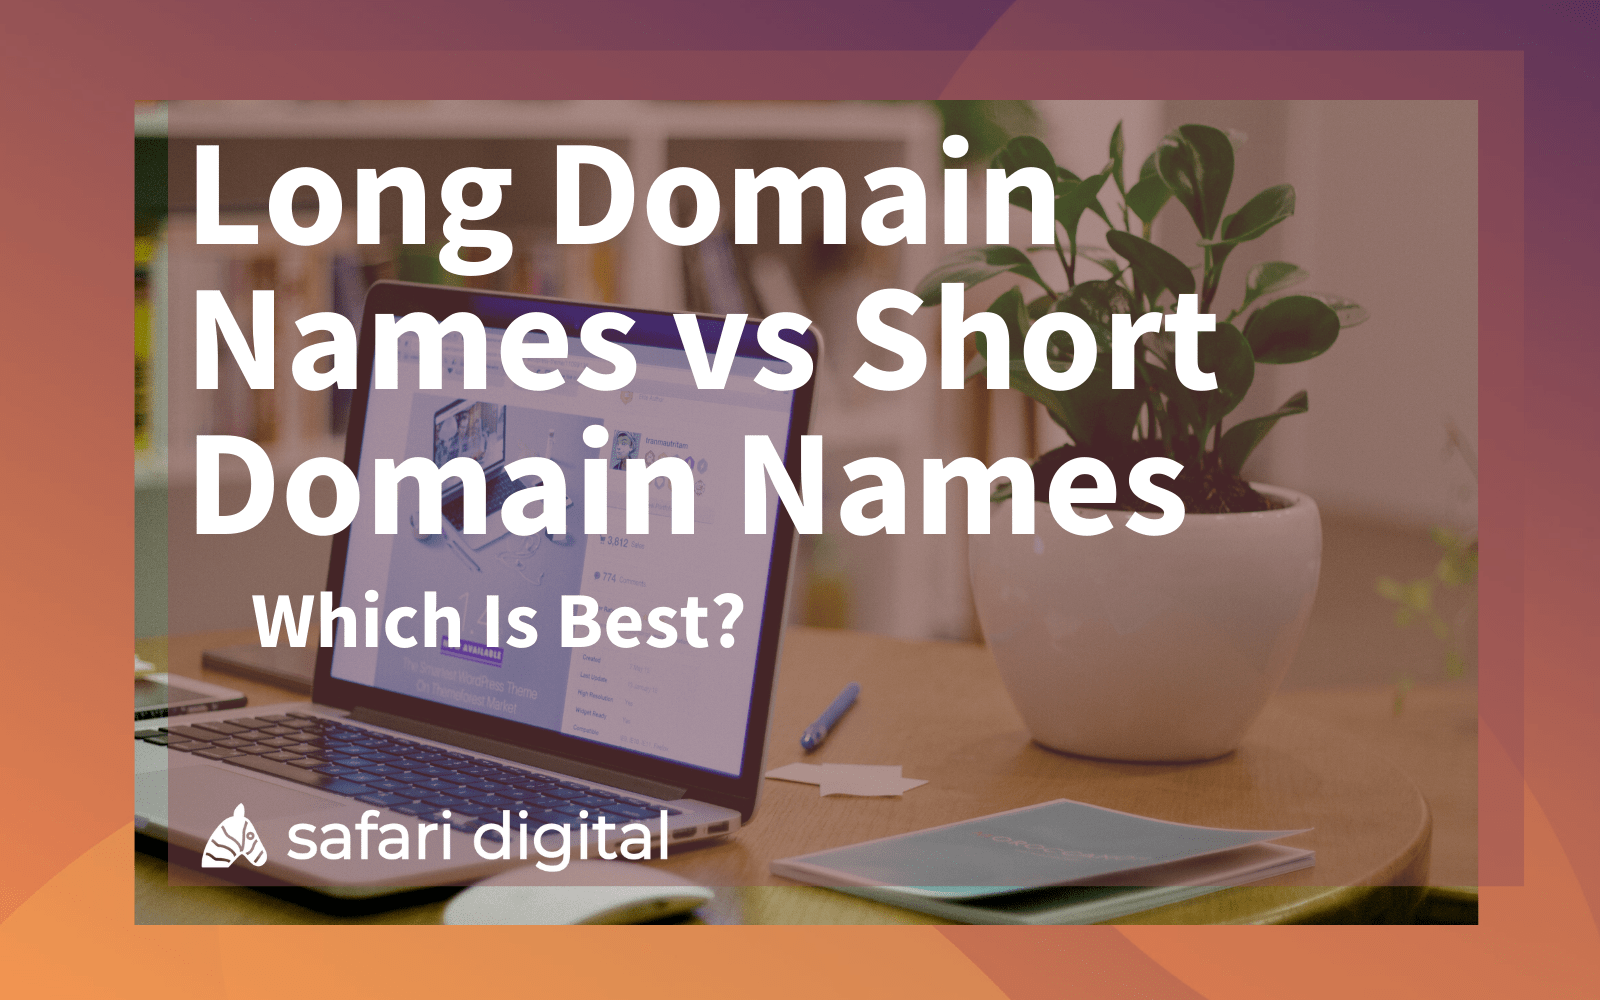 Long Domain Names vs Short Domain Names Cover Image